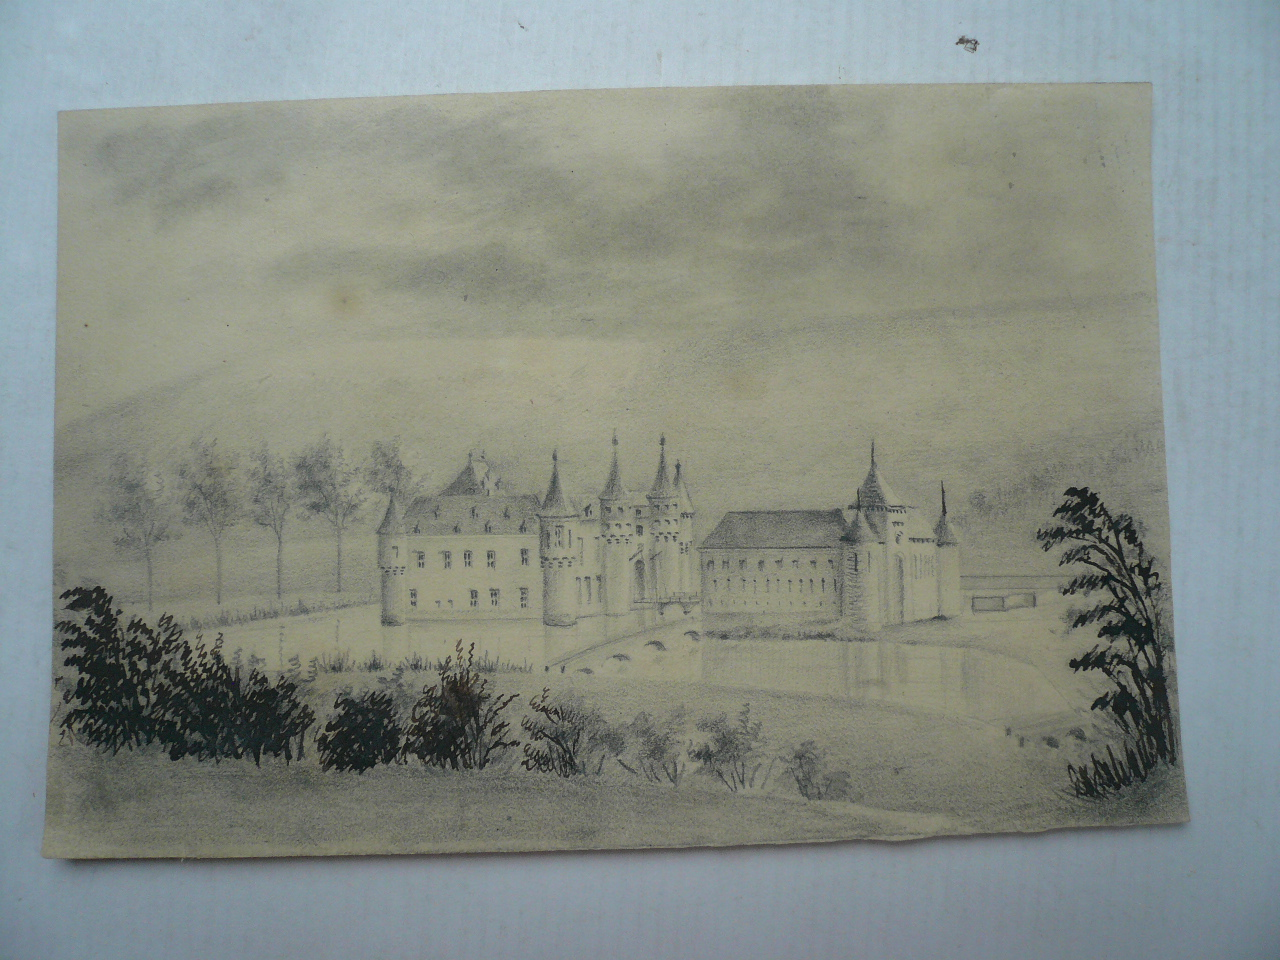 Chateau Spontin, anno 1900, paniting, size: 14x20 cm..